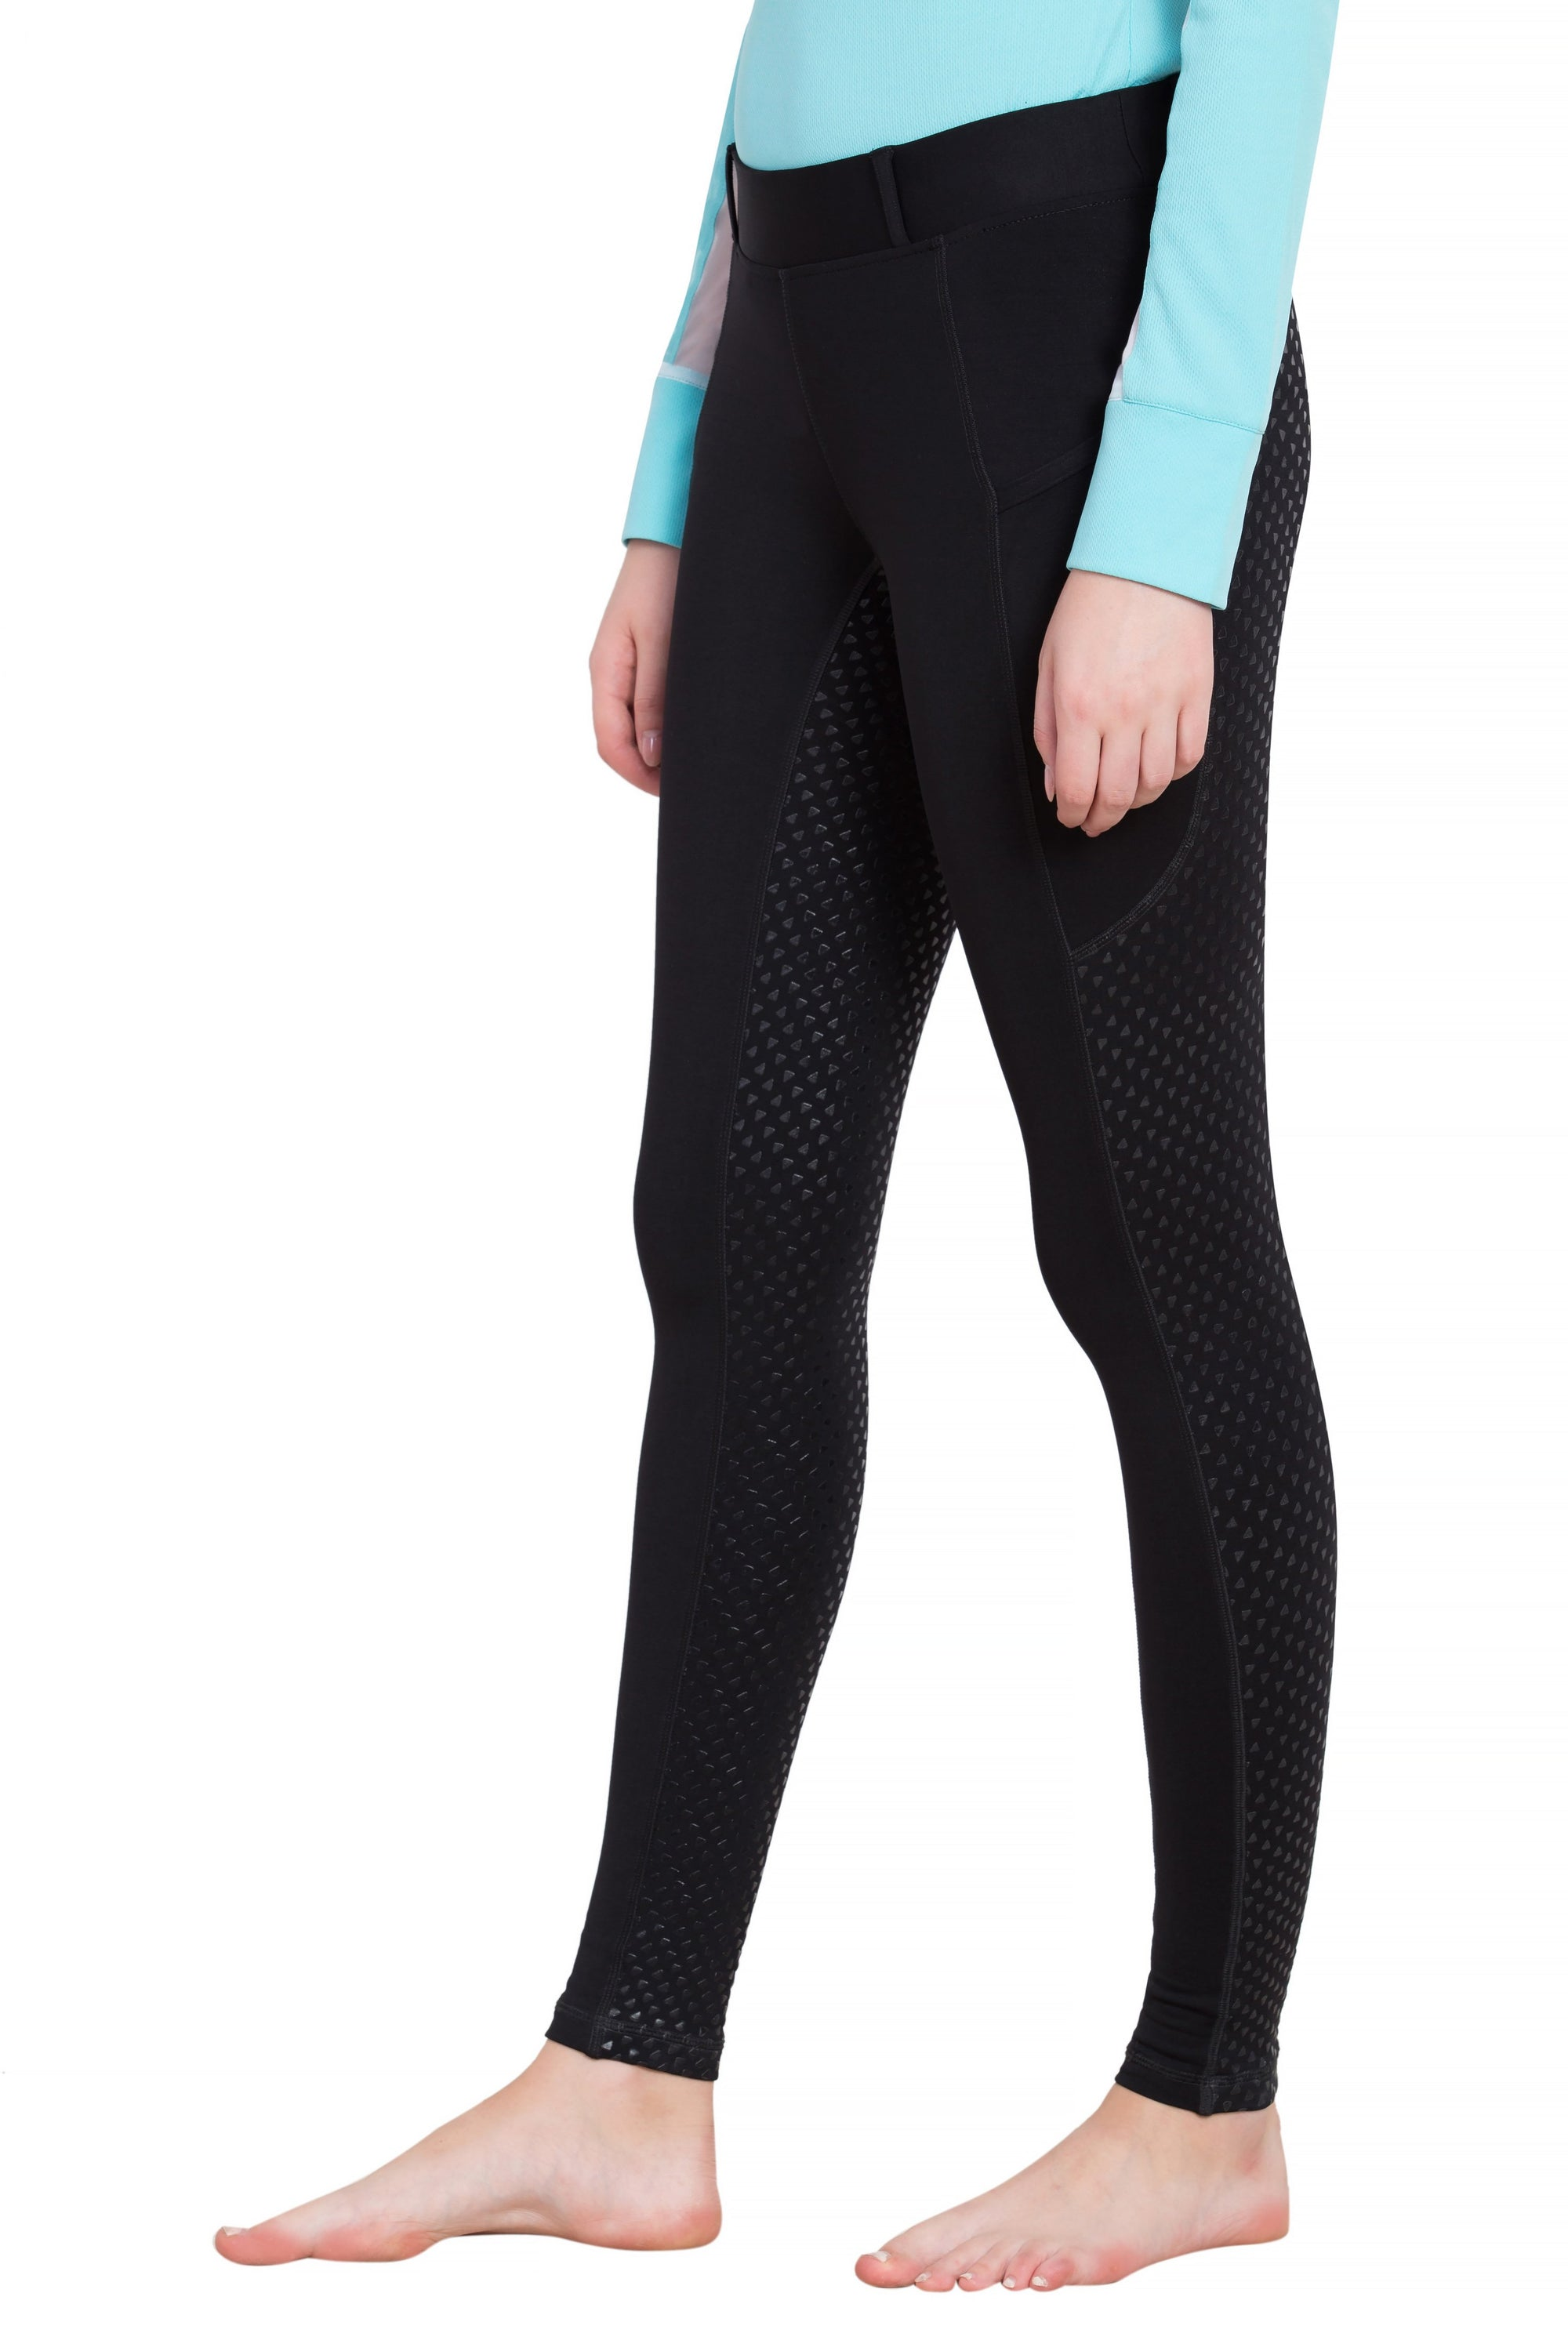 Ladies 3 Season Riding Tights - TuffRider - Breeches.com